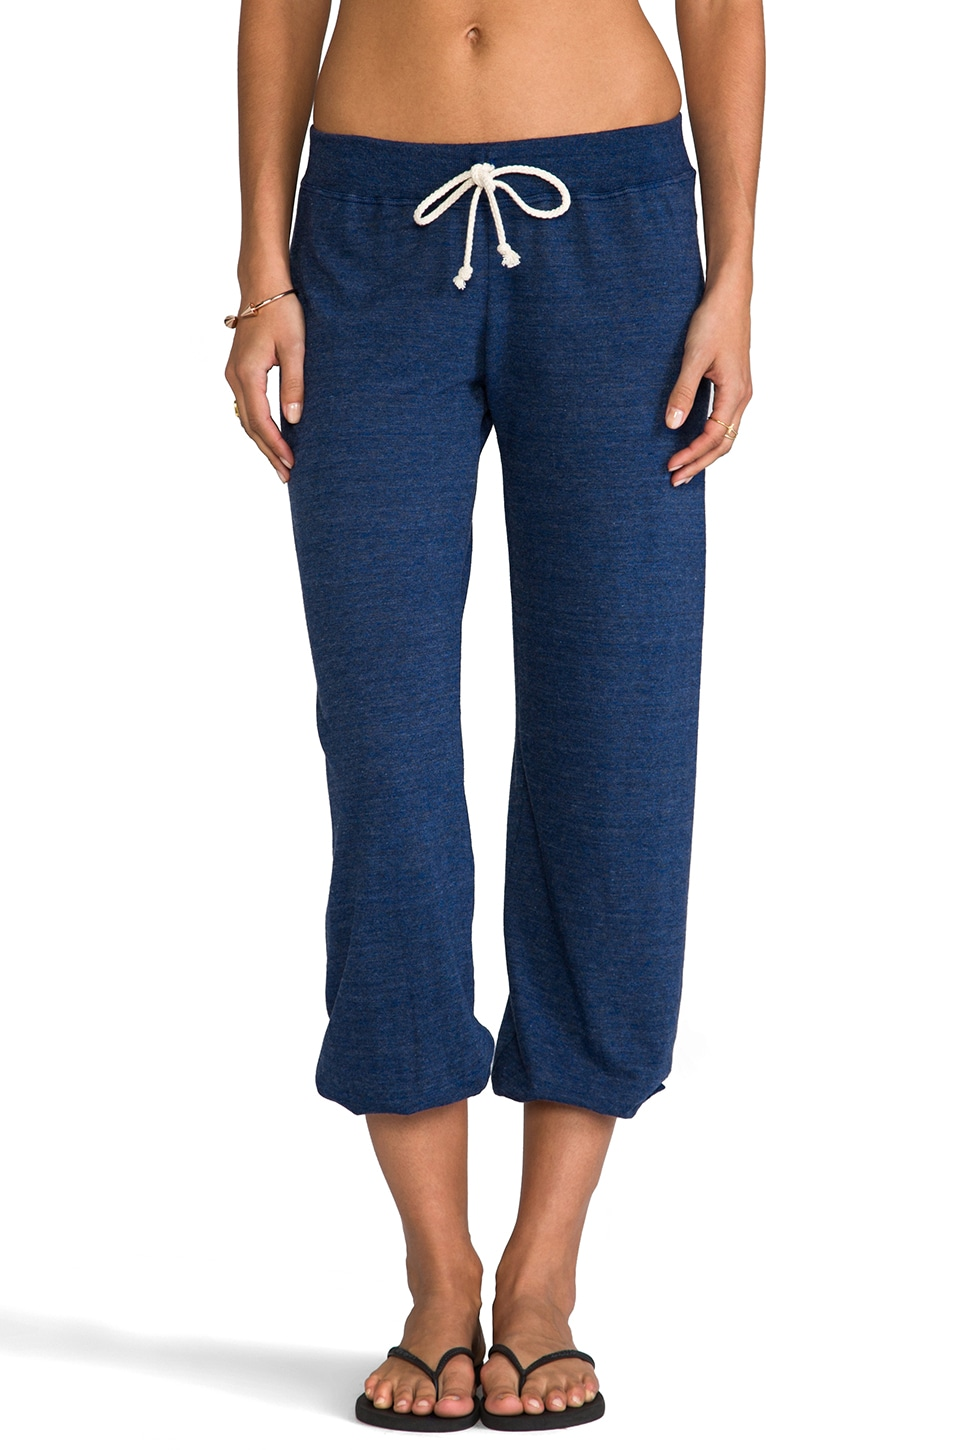 Nation LTD Medora Capri Sweats in Heather Bluebird